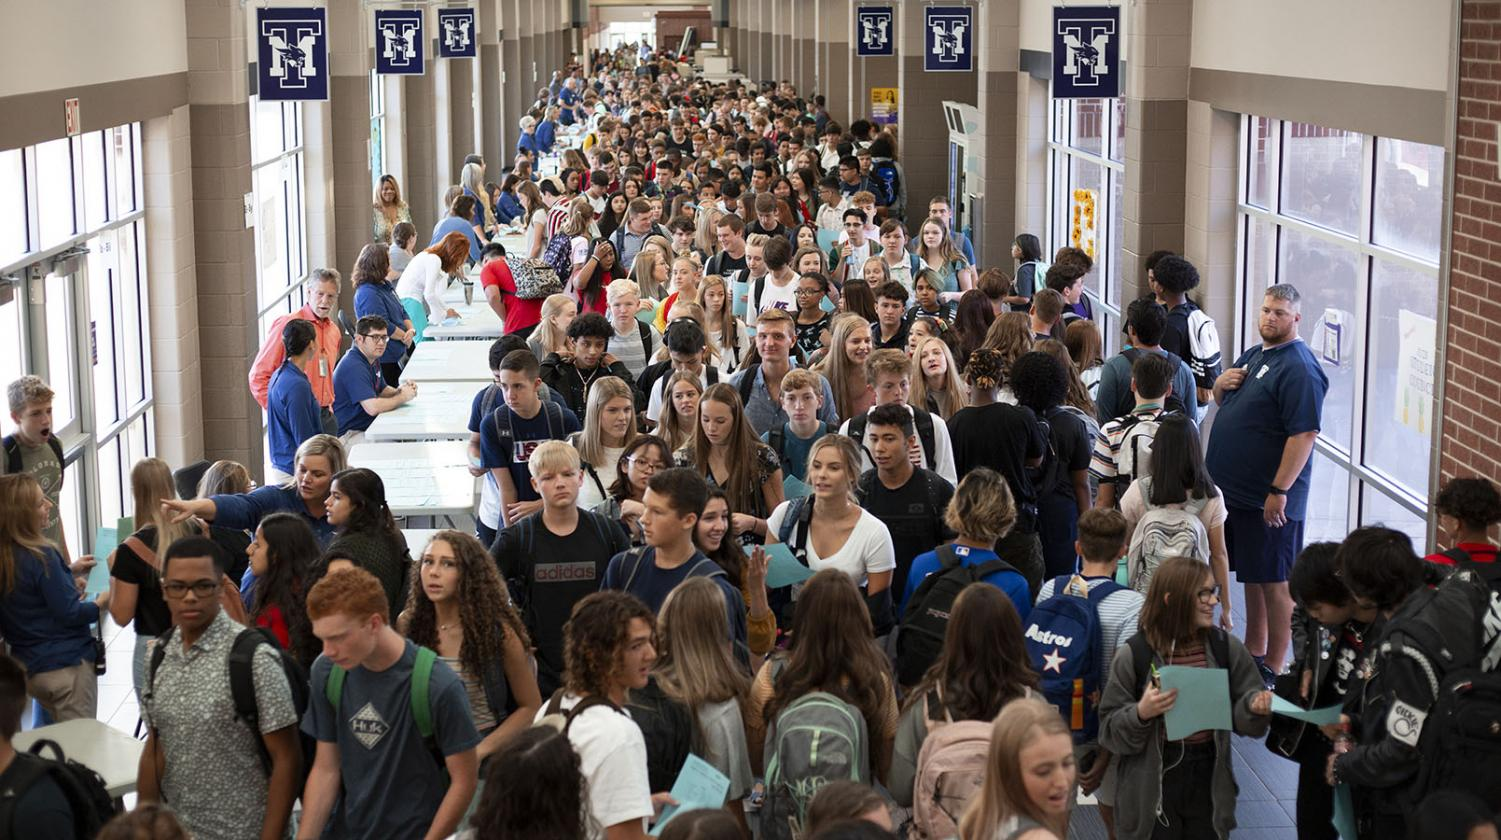 """Students clamor through the hallways toward class on the first day of school. """"It's like being stuck in traffic,"""" sophomore Katelin Callahan said. """"You can feel everyone else's body heat, and someone's always breathing down your neck and bumping into your backpack."""" The additional construction planned for 2020 was intended to accommodate the oversized student body."""